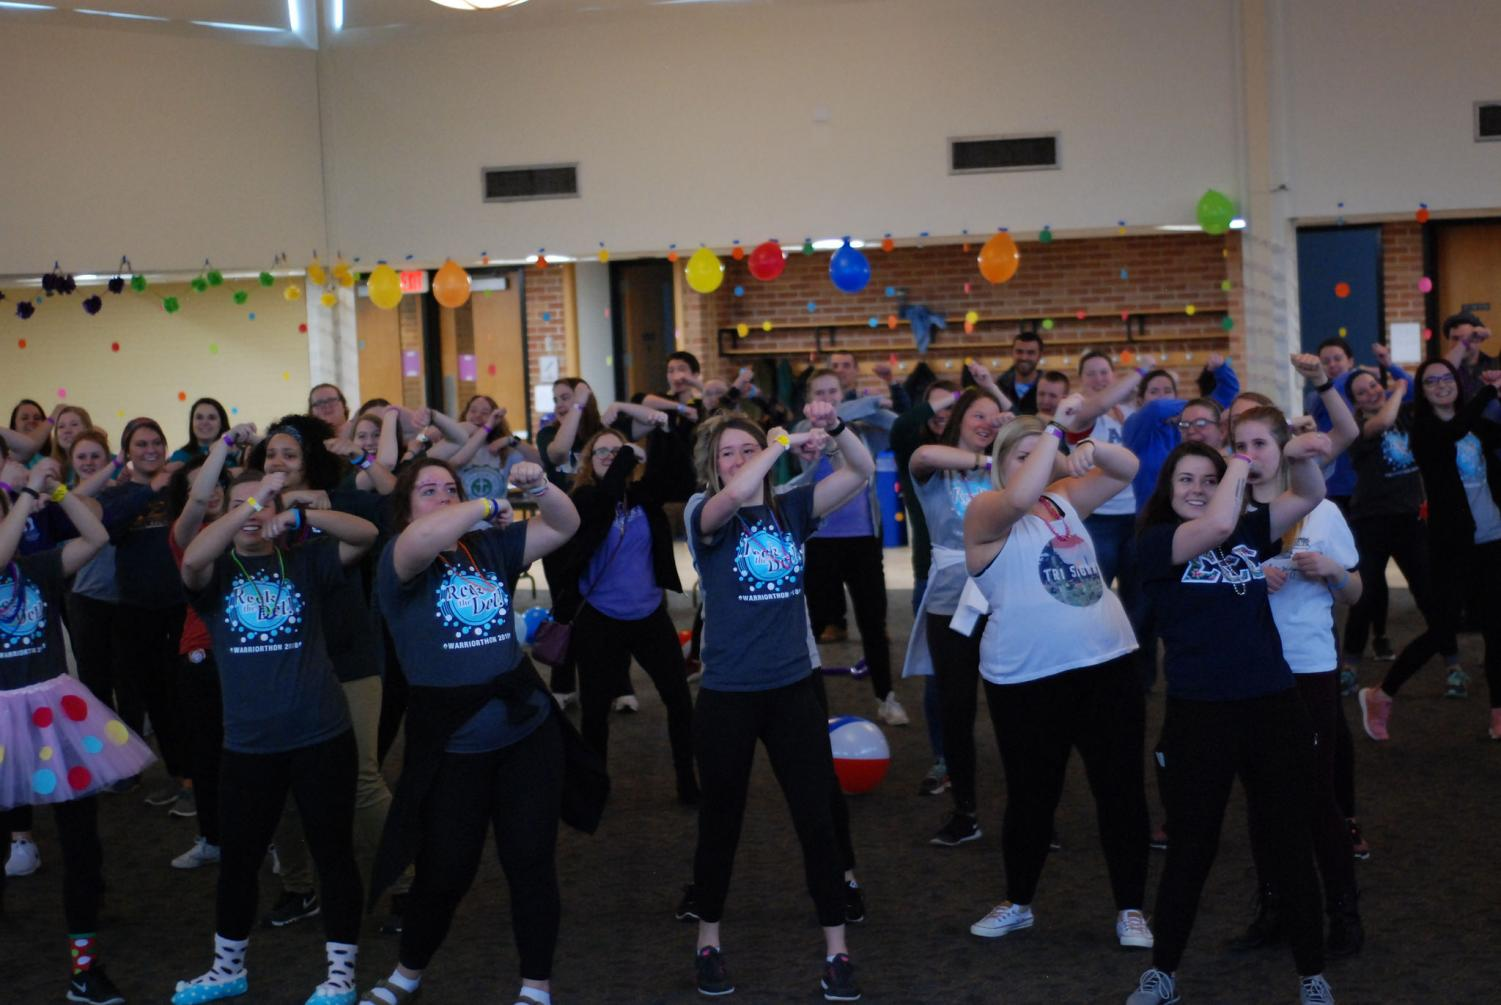 Students and community members filled East Hall on Saturday, Feb. 24, for the